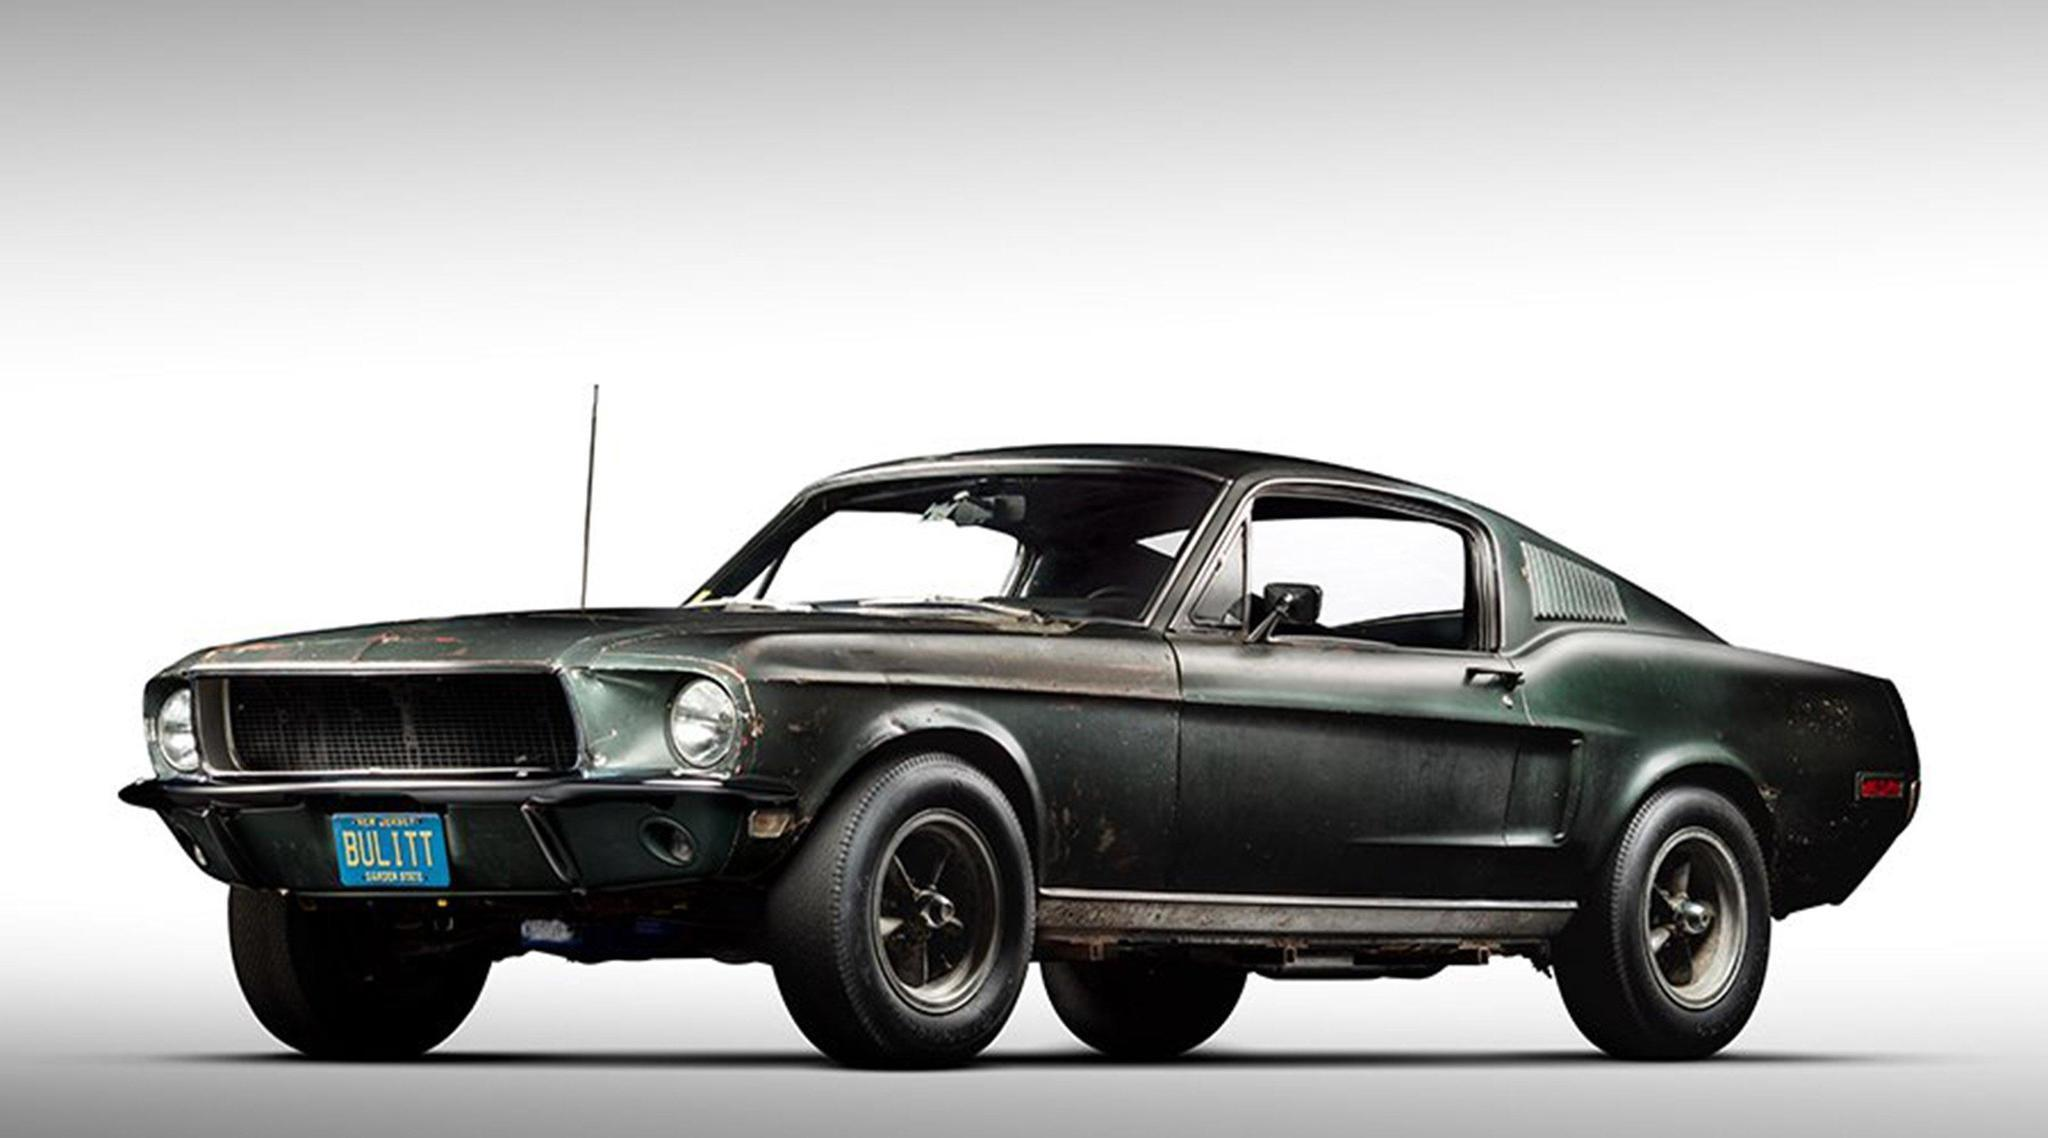 Bullitt mustang the auto worlds lost treasure of 50 years prepares for world tour chicago tribune